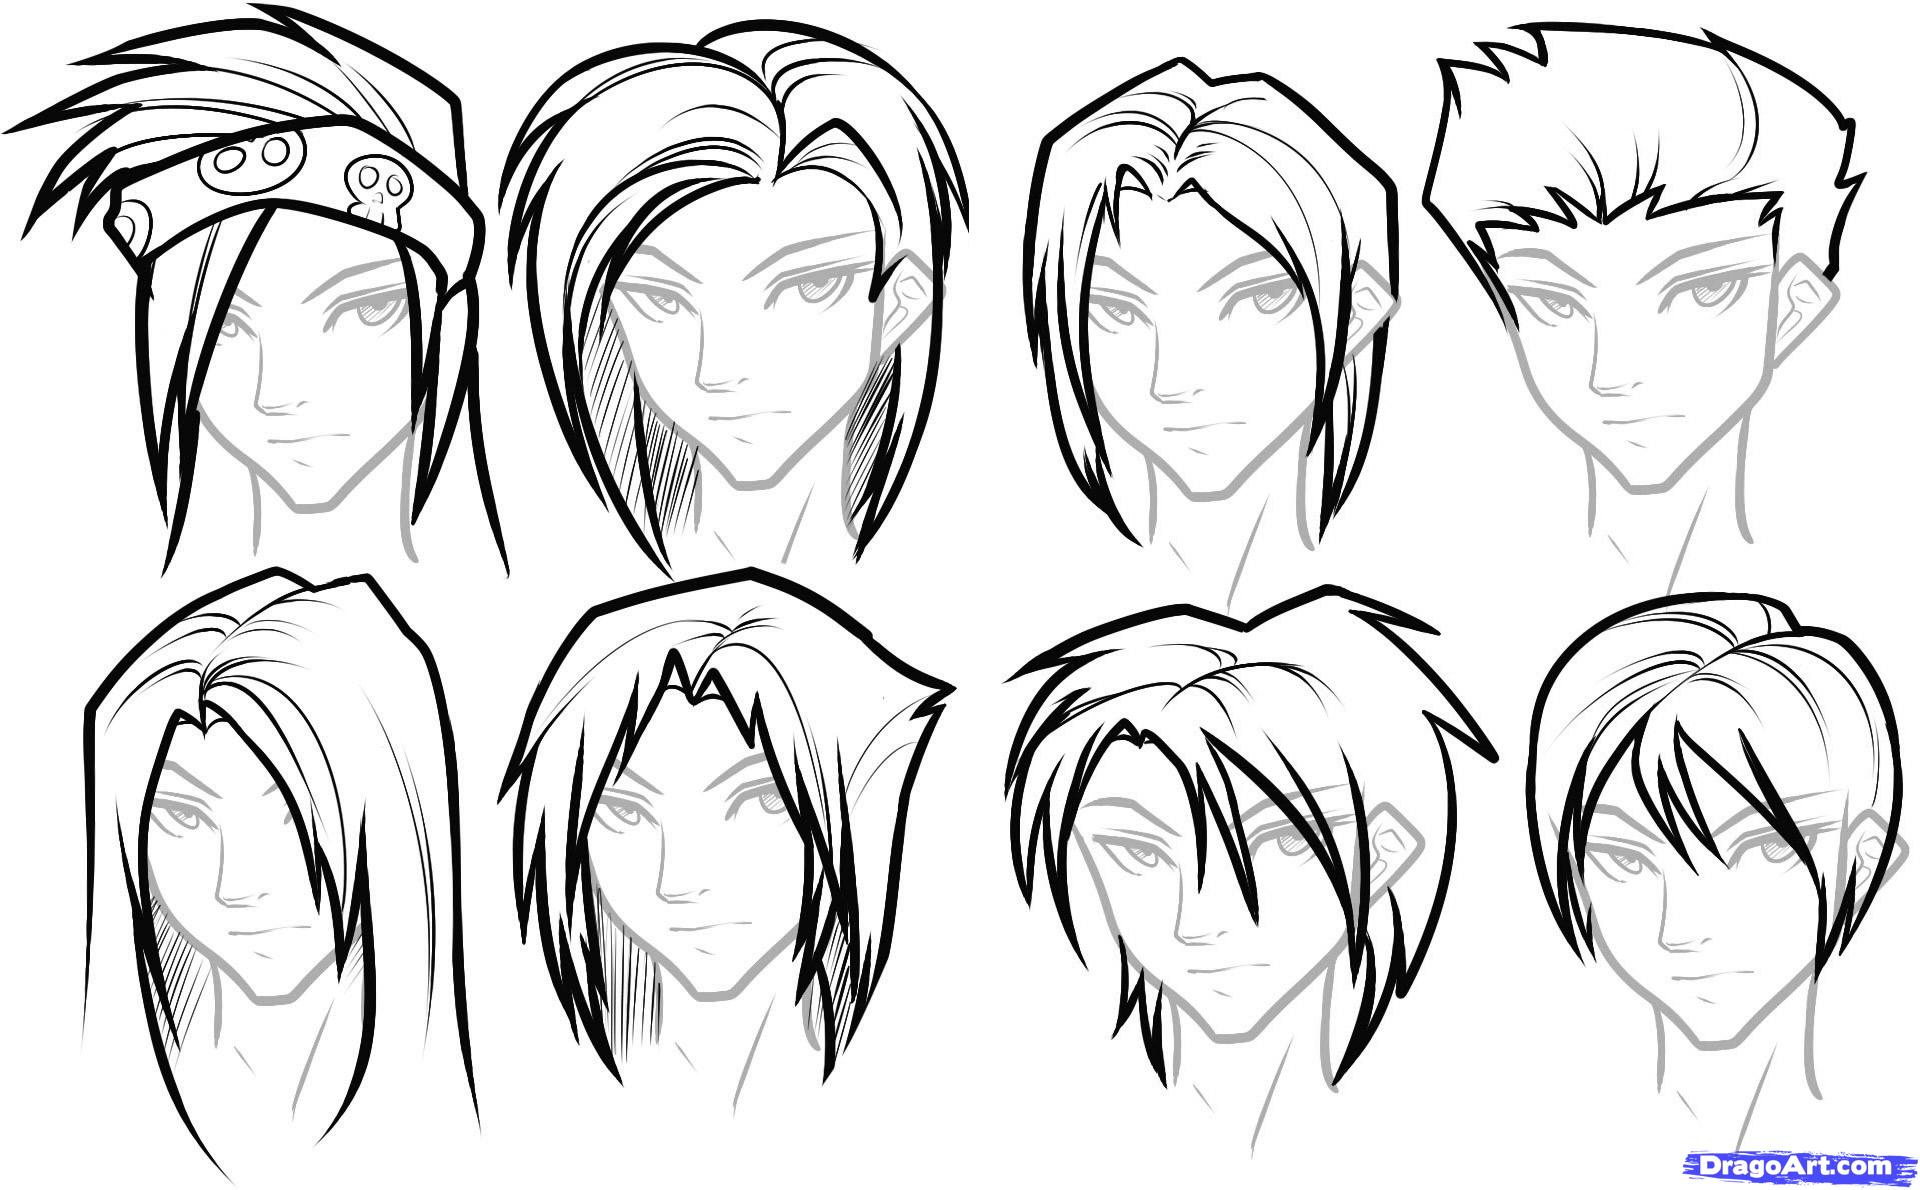 1920x1190 To Draw Hair For Boys, Step By Step, Hair, People, FREE Online